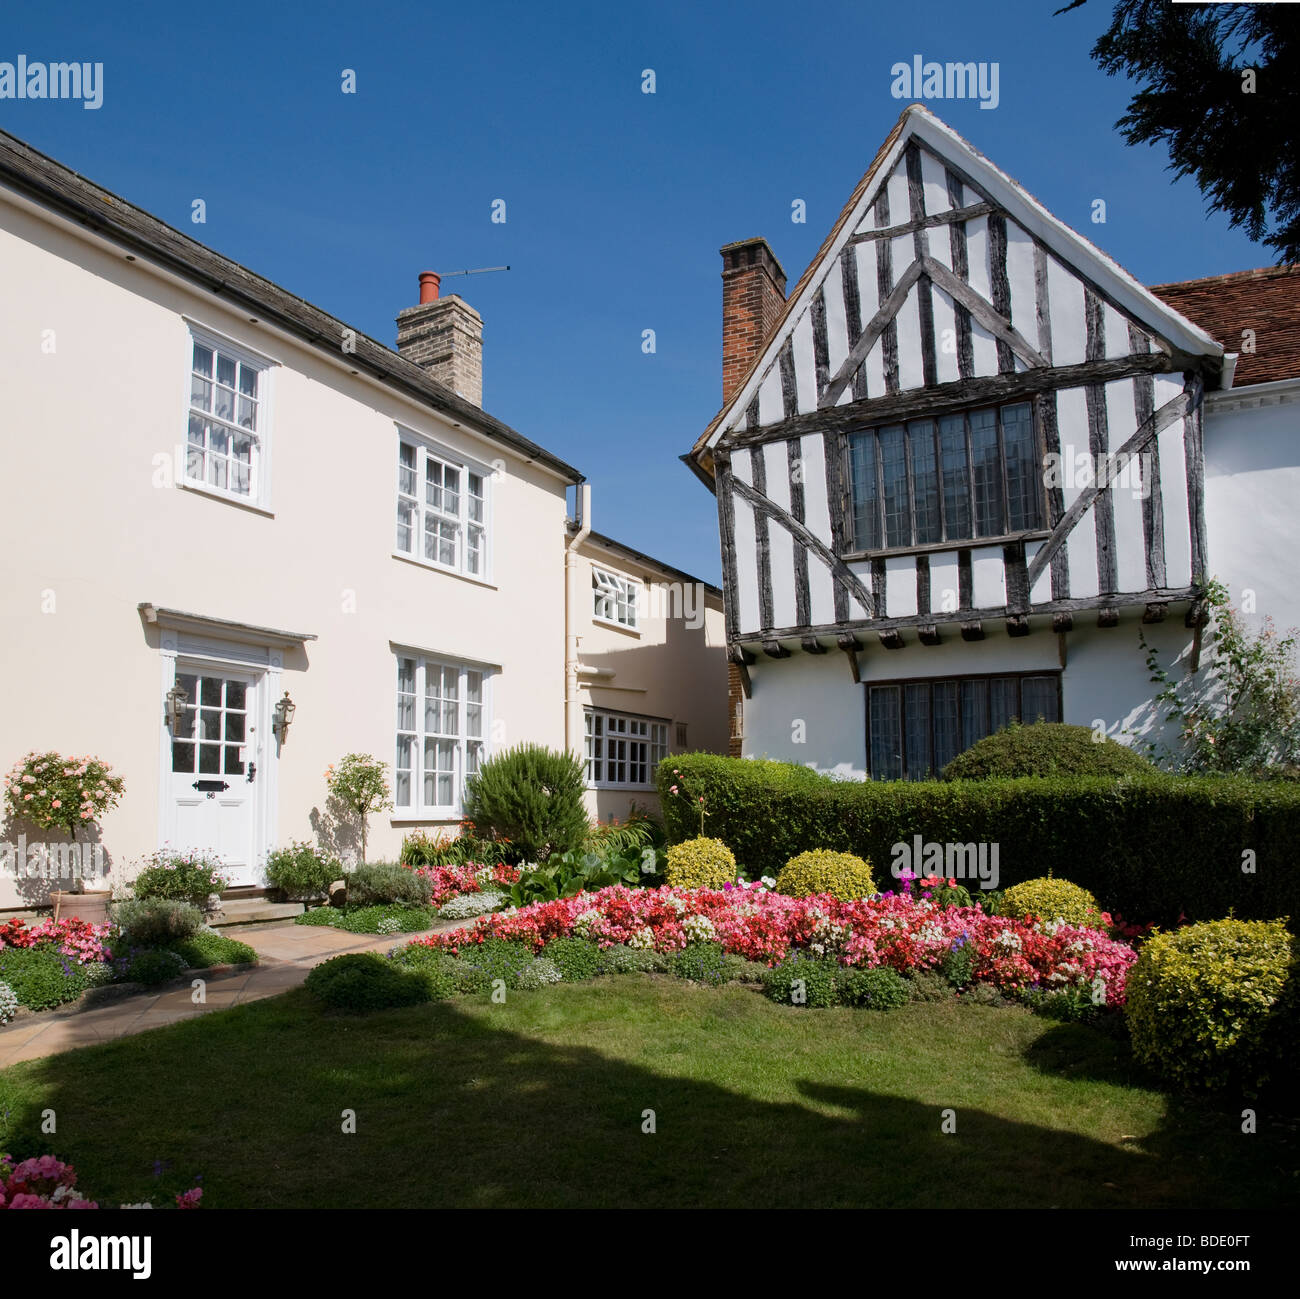 A timber framed house and its garden in Lavenham, Suffolk, England - Stock Image